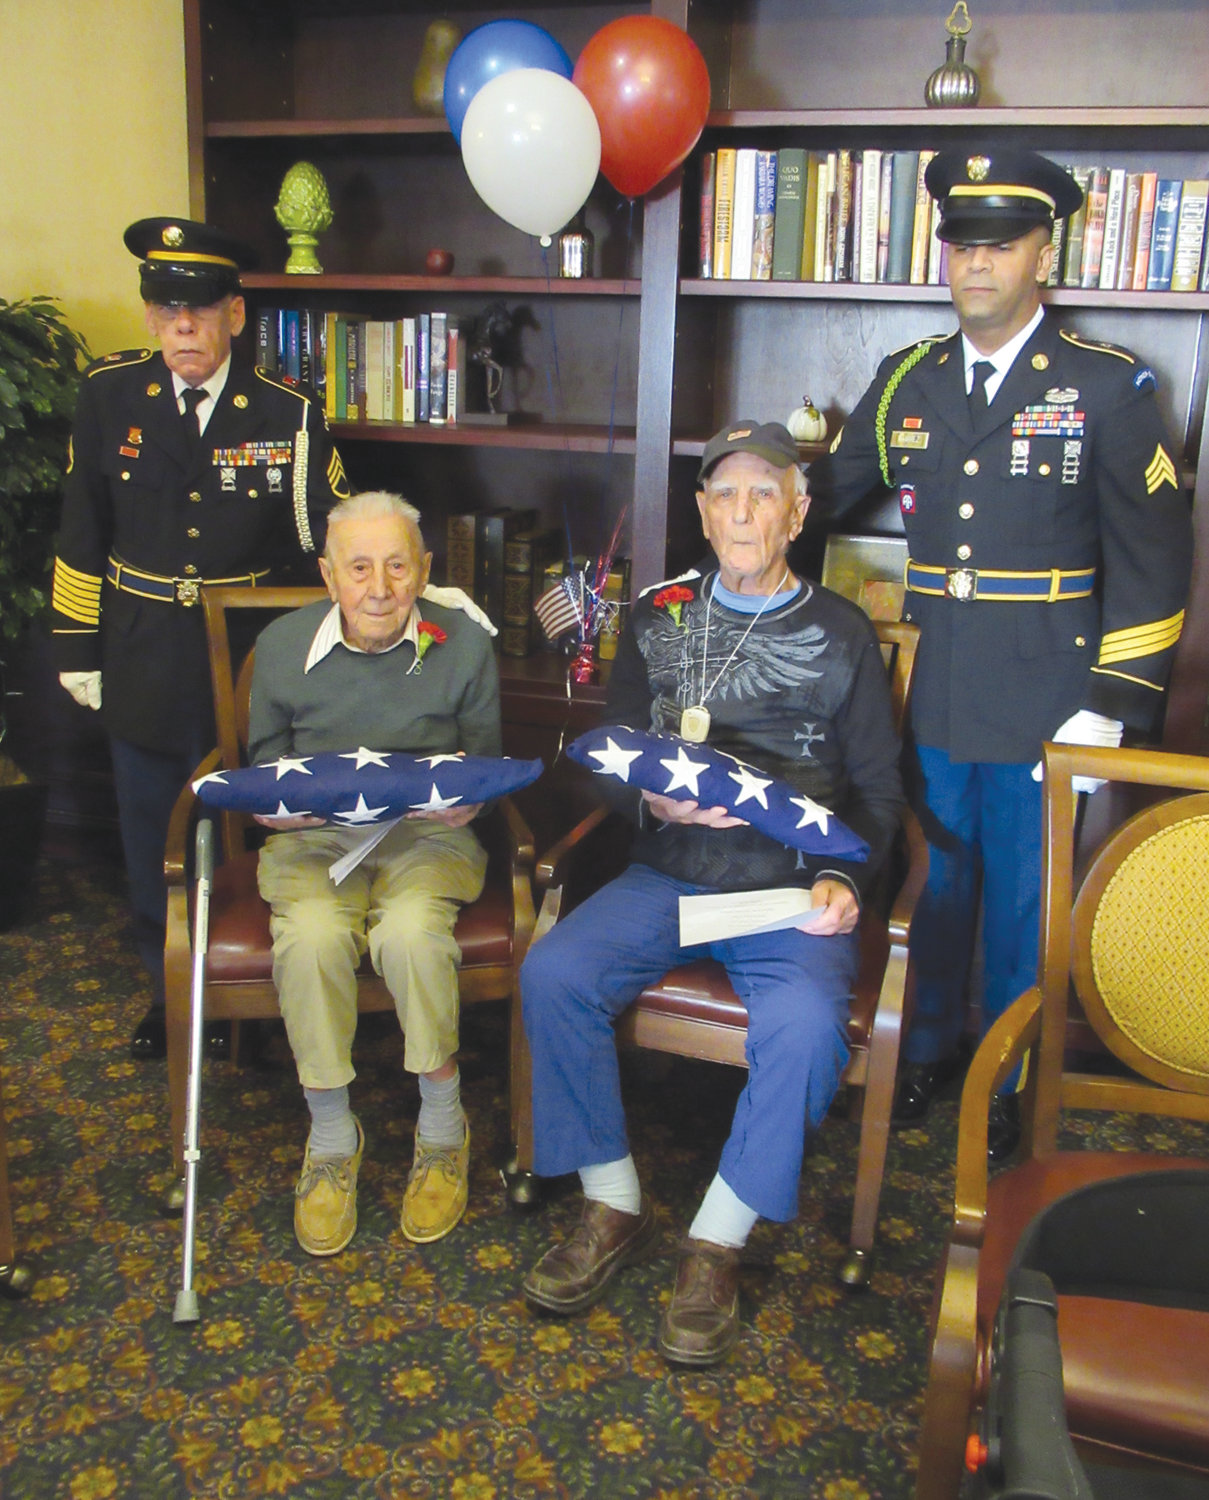 SPECIAL SALUTE: U.S. Army Staff Sgt. Mark McGrath, standing left, and Sgt. Richard Ramirez, standing right, join Nazareth Piccirilli, seated left, and George Costa, seated right, with an American flag in honor of being the oldest veterans living at The Bridge at Cherry Hill.